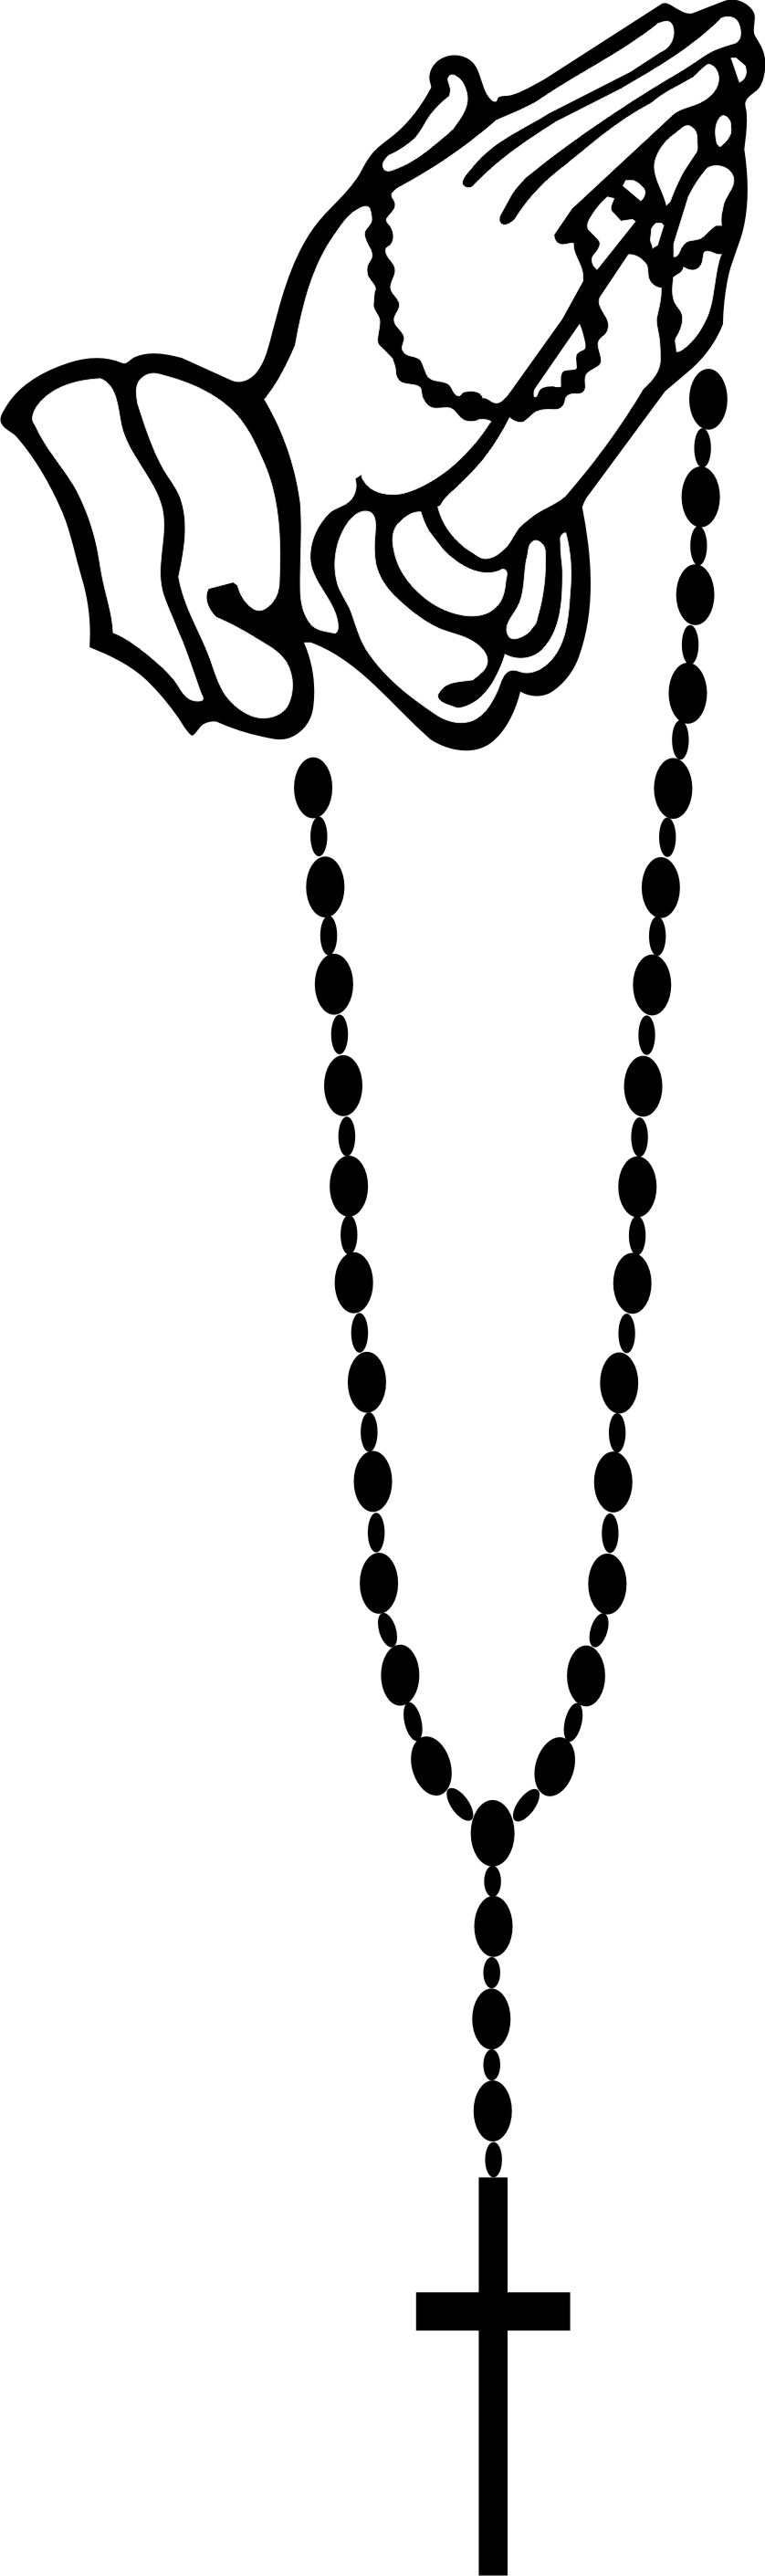 Rosary beads outline clipart.